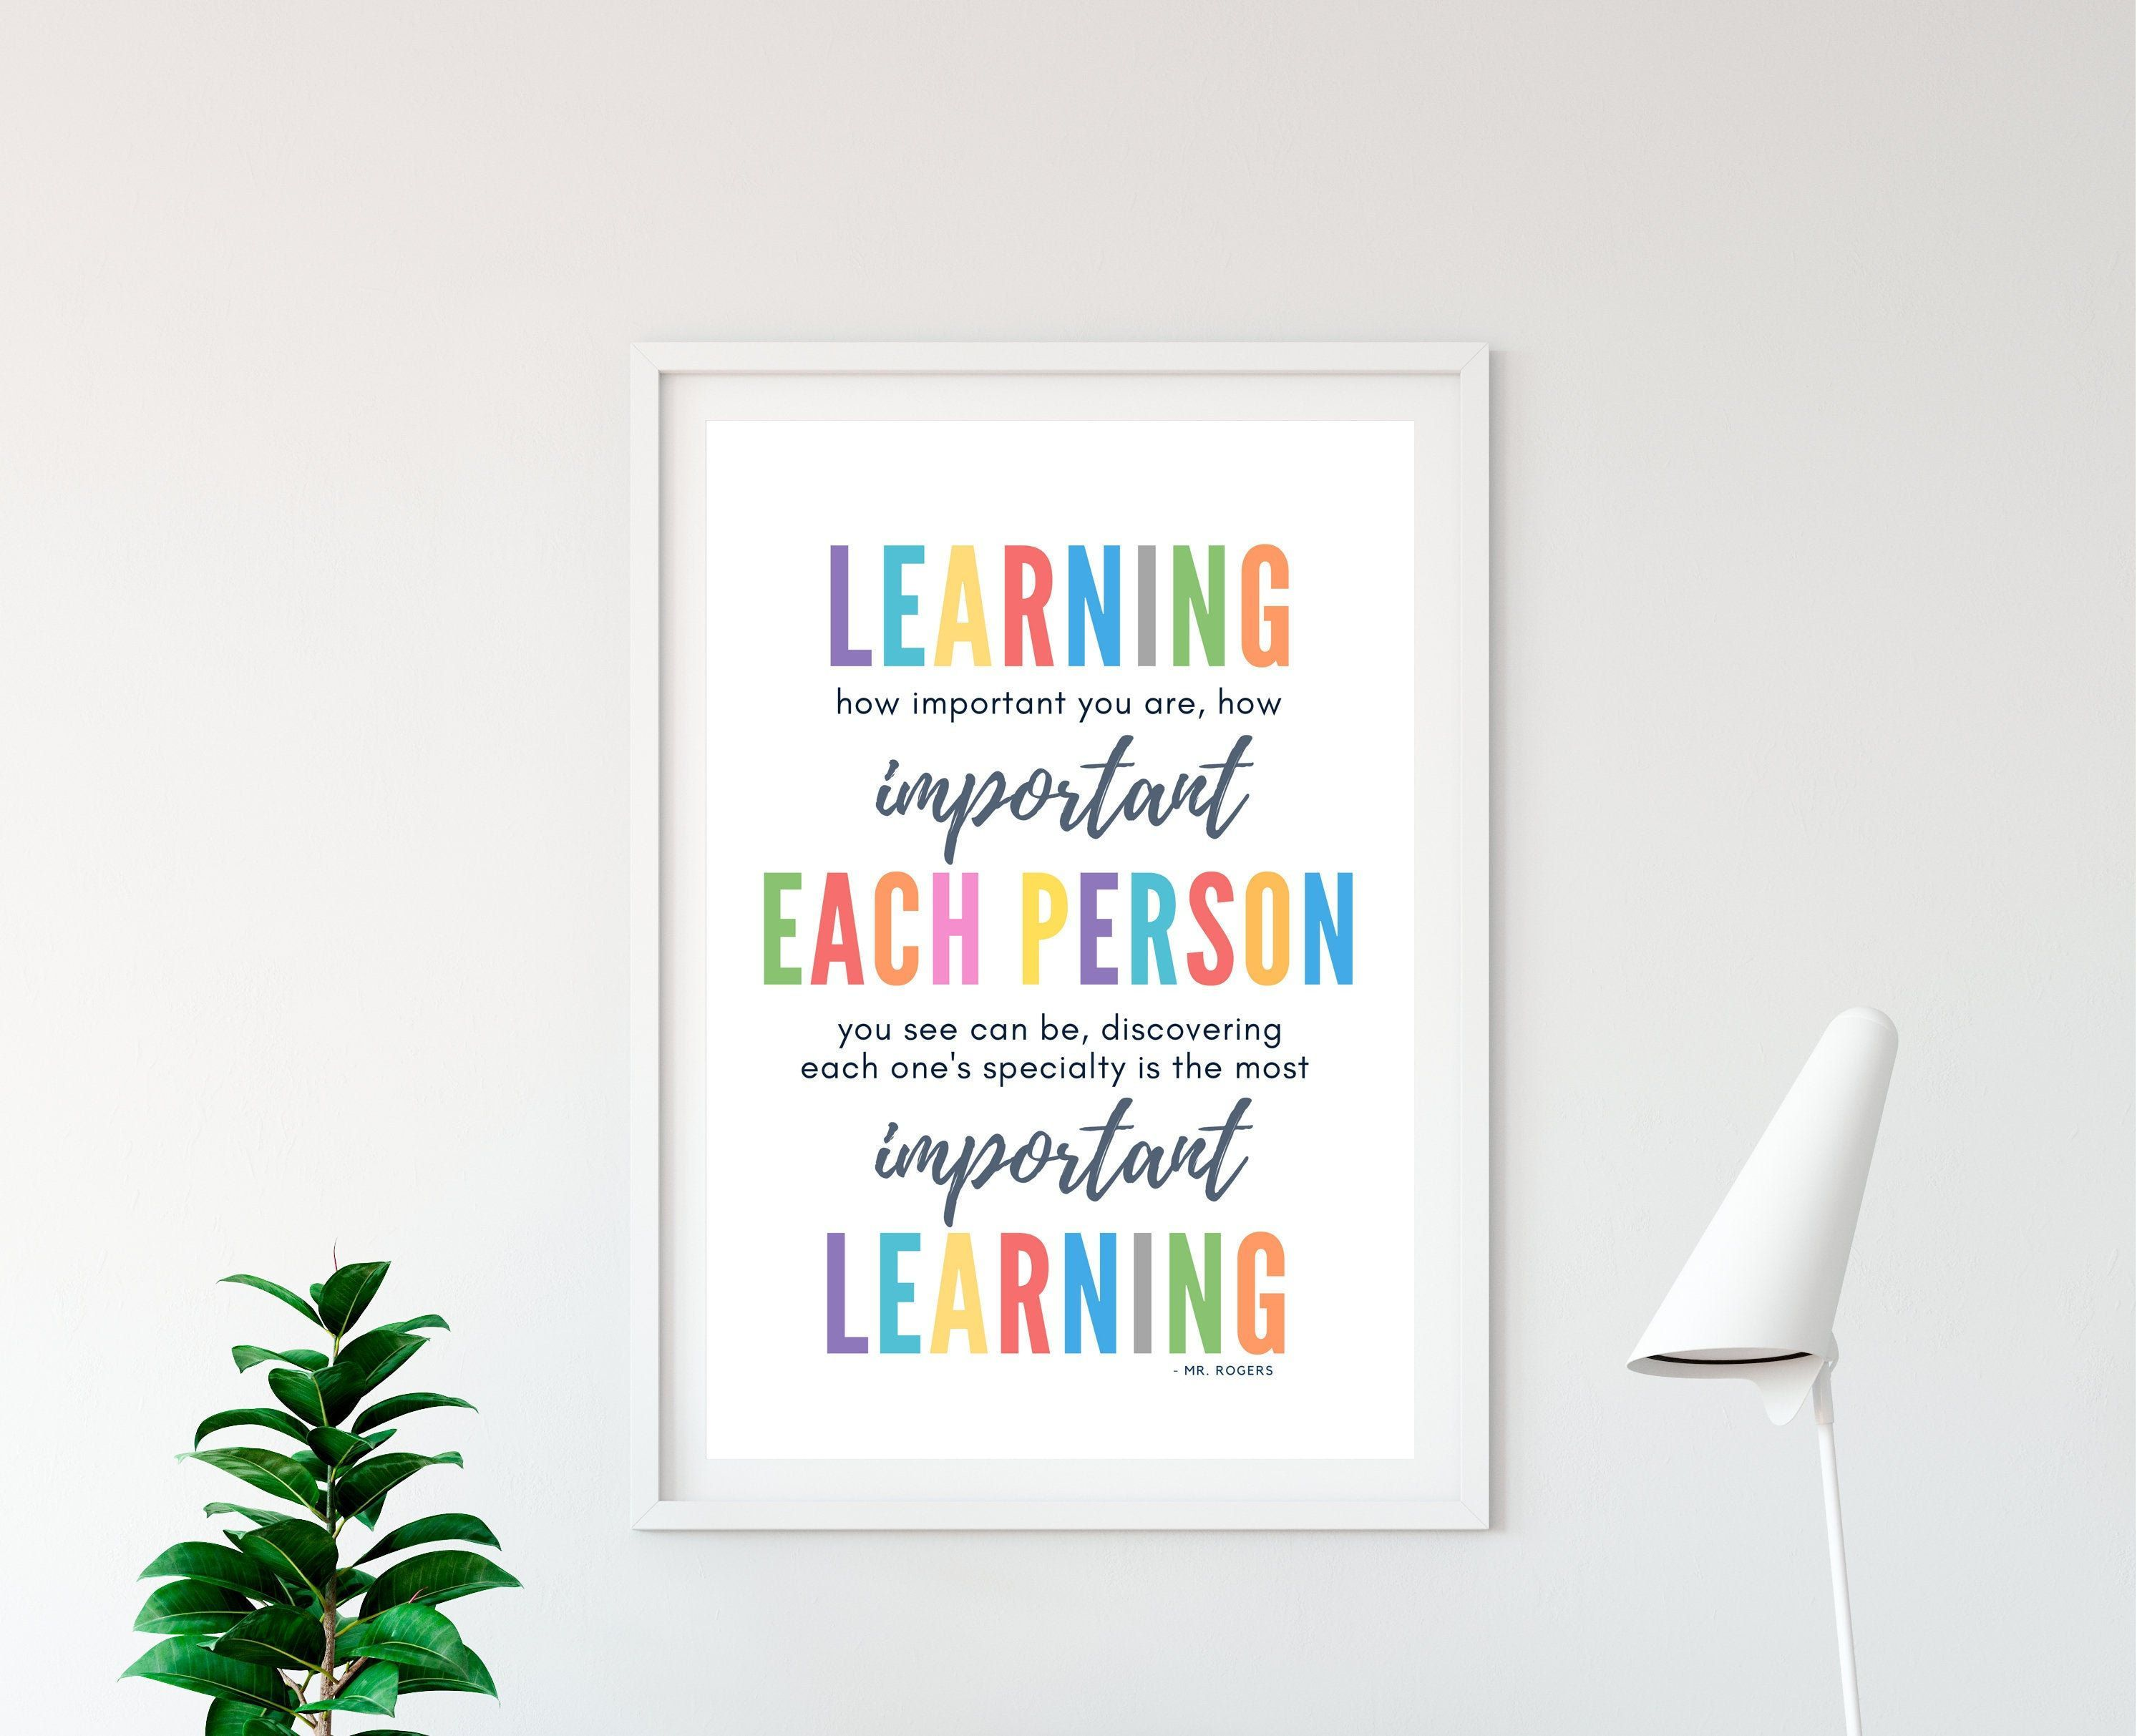 Mr Rogers Quotes Growth Mindset Art Colorful Printable Wall Art Pastel Classroom Decor Educational Posters Teacher Digital Download Art Classroom Col Etsy